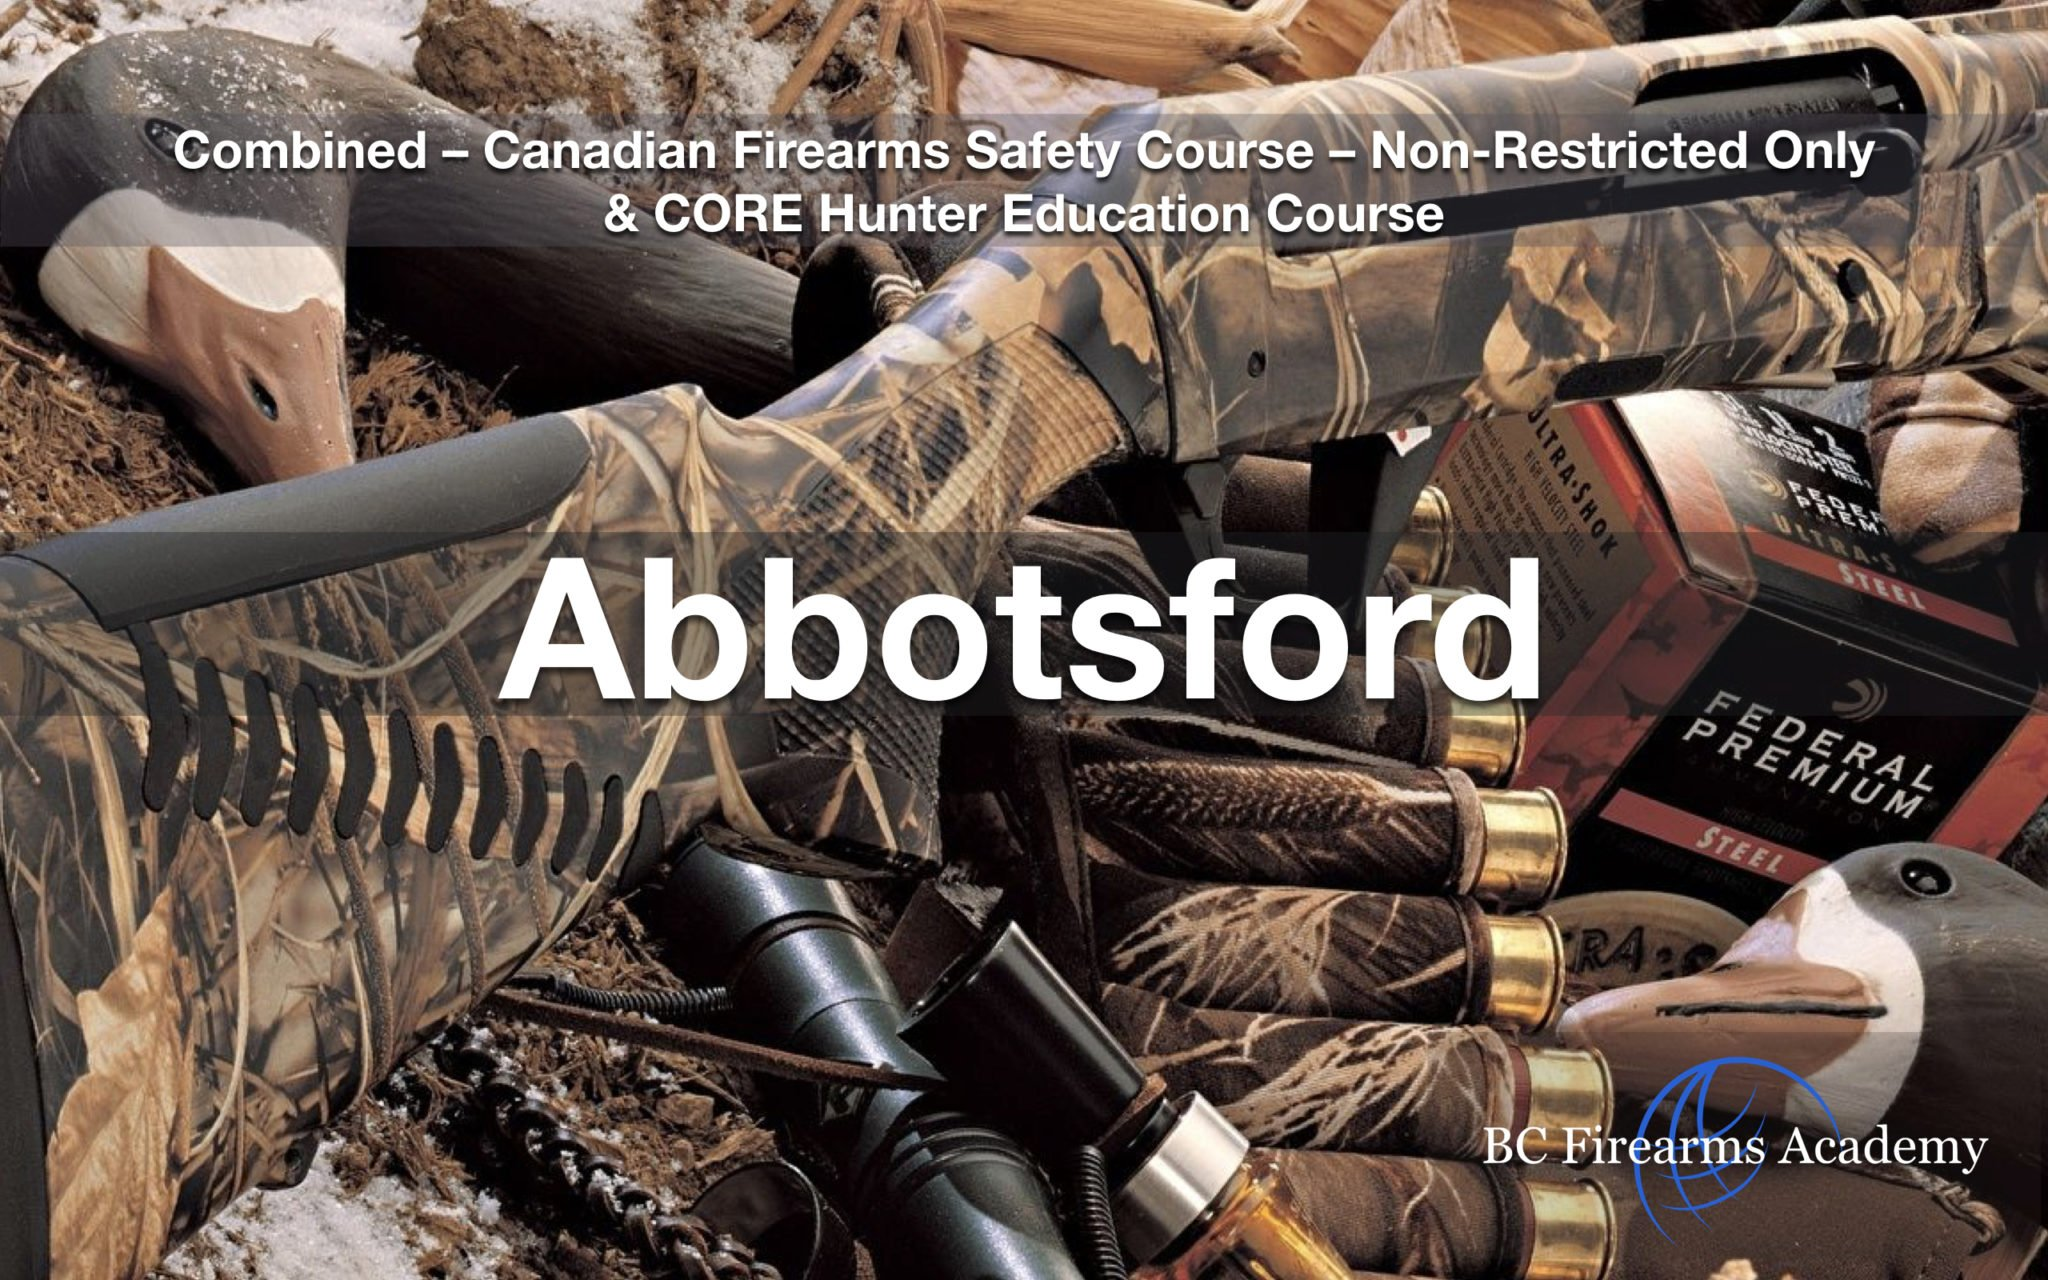 CFSC & CORE – Non Restricted Firearms License & CORE Hunter Education Abbotsford Feb 9/10 Sat/Sun